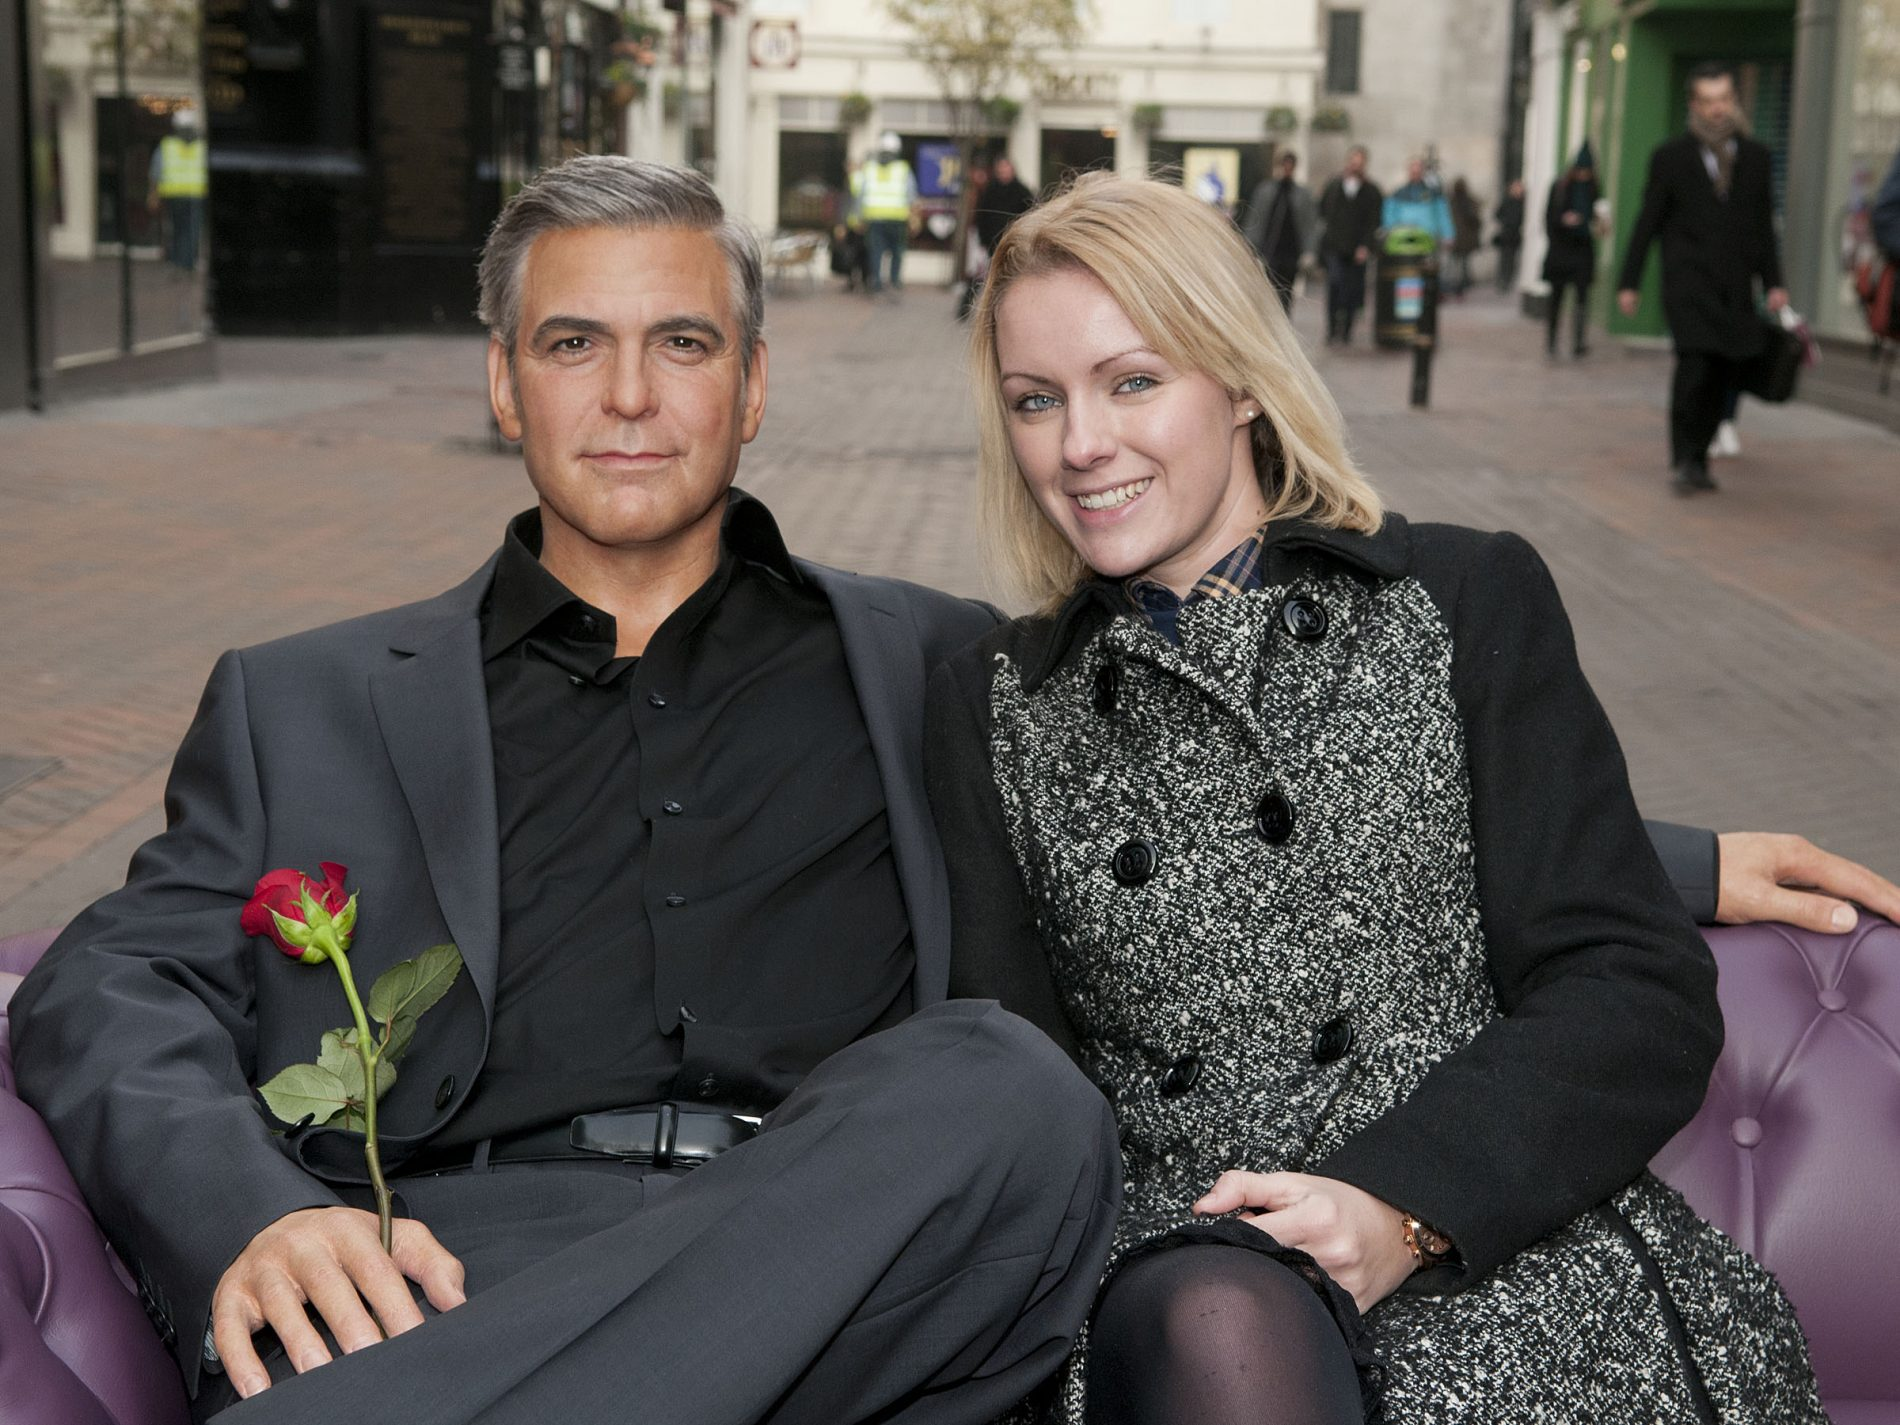 Photo story: FANS GET UP CLOSE AND PERSONAL WITH GEORGE CLOONEY ON AN ALFRESCO PRE-VALENTINE'S DAY DATE IN CARNABY STREET